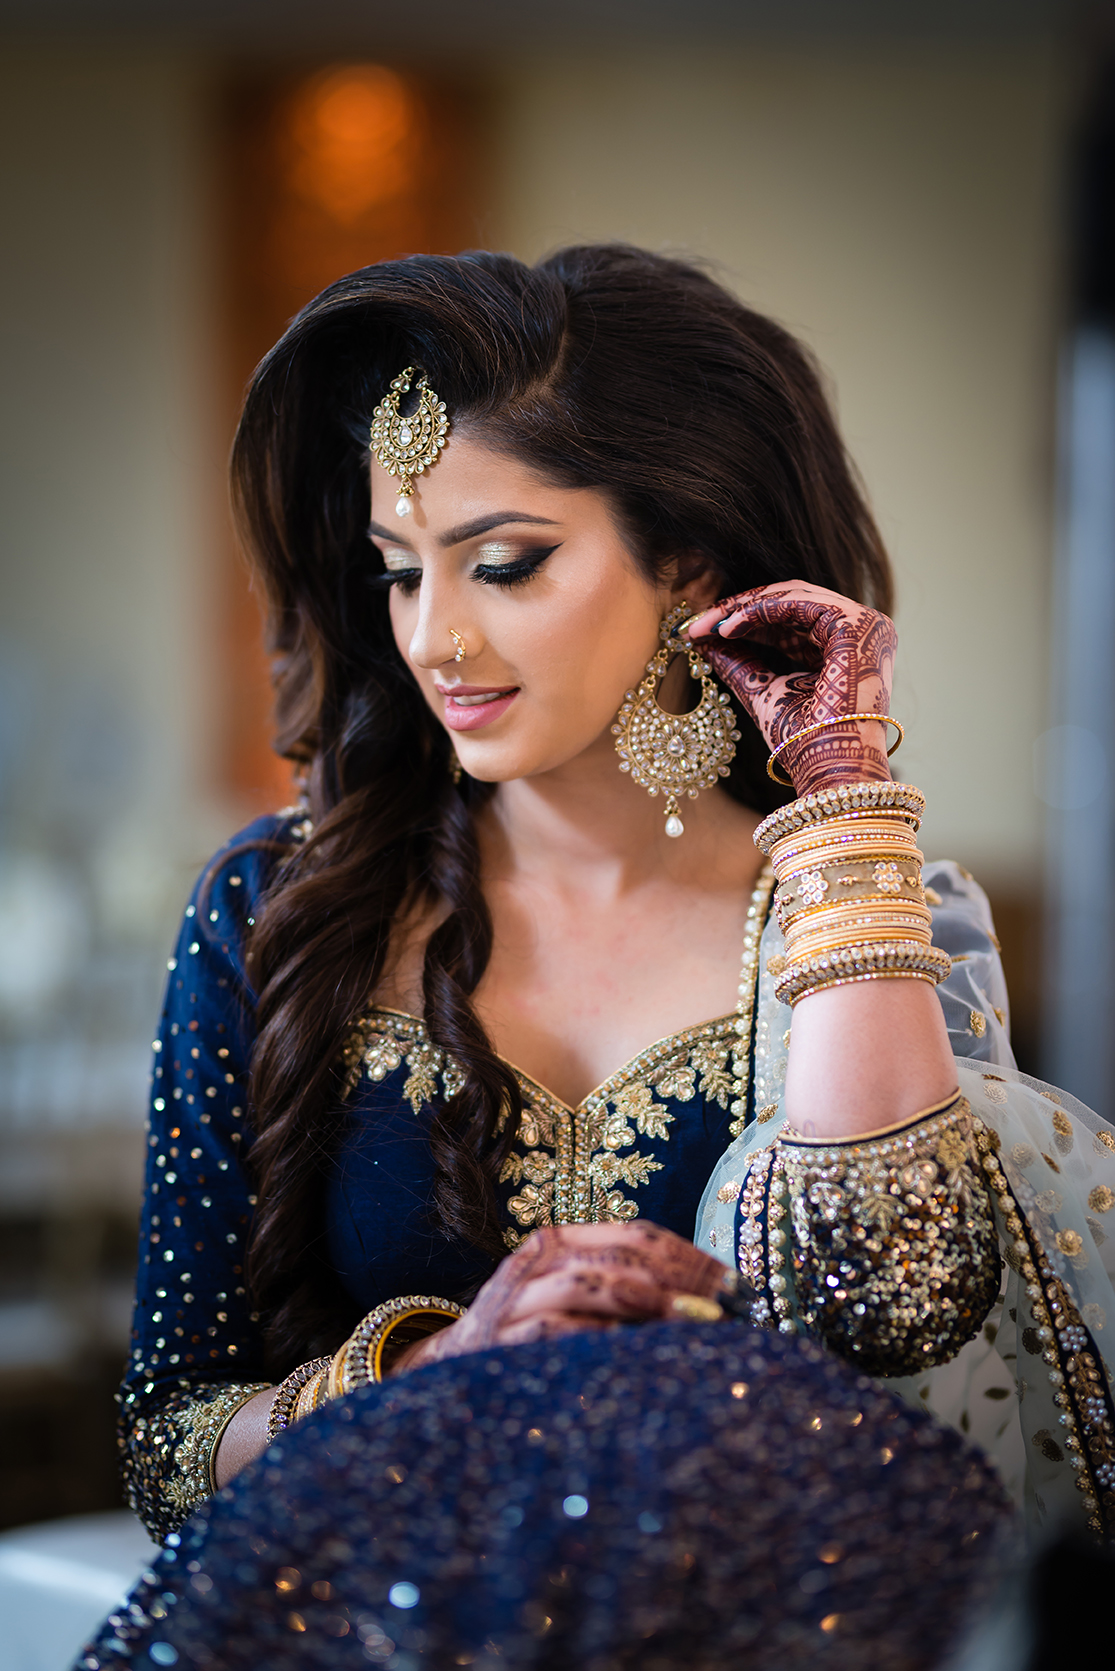 south_asian_wedding_photography_dhoom_studio_new_york56 SOUTH ASIAN WEDDINGS